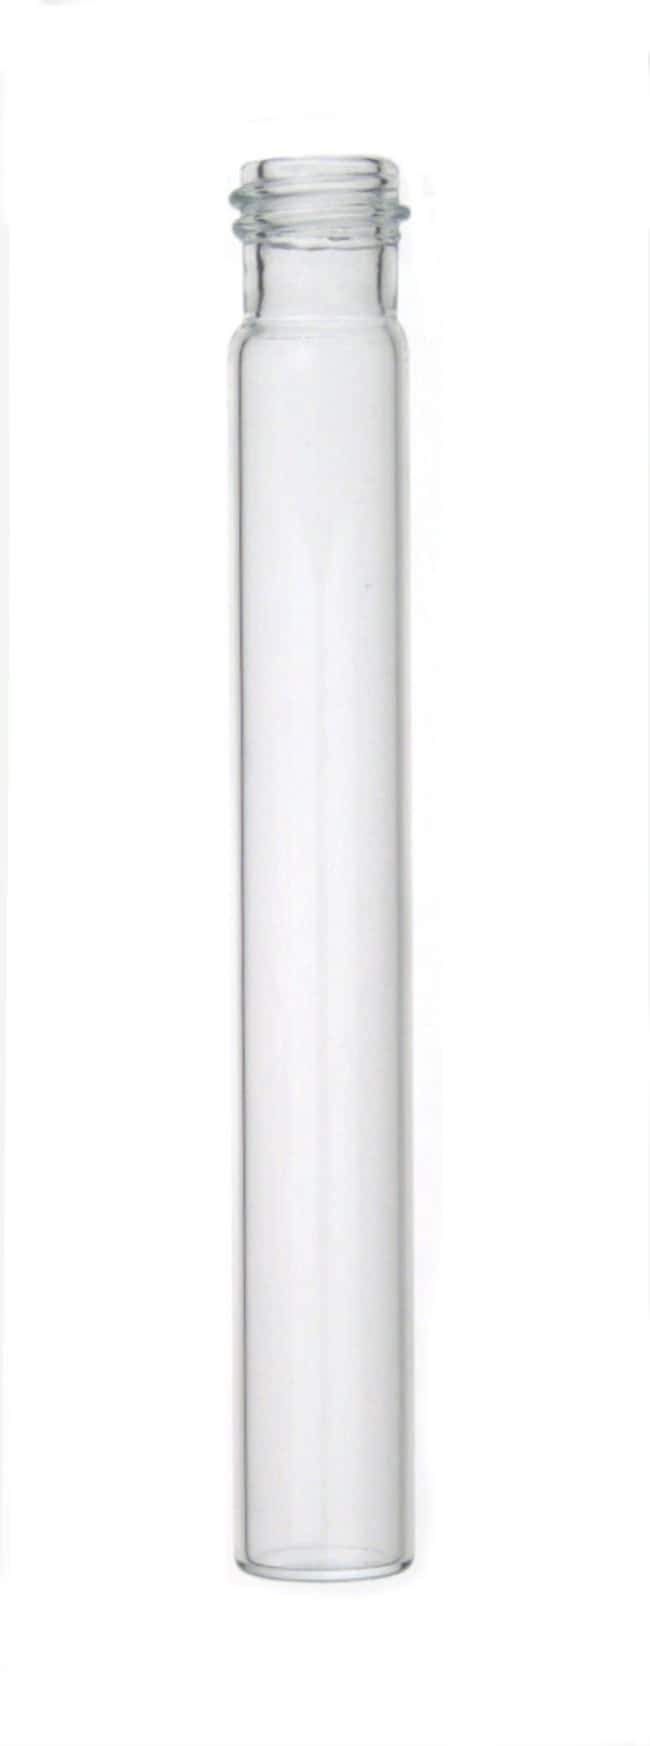 DWK Life Sciences Kimble Disposable Glass Culture Tube  13-415 threaded